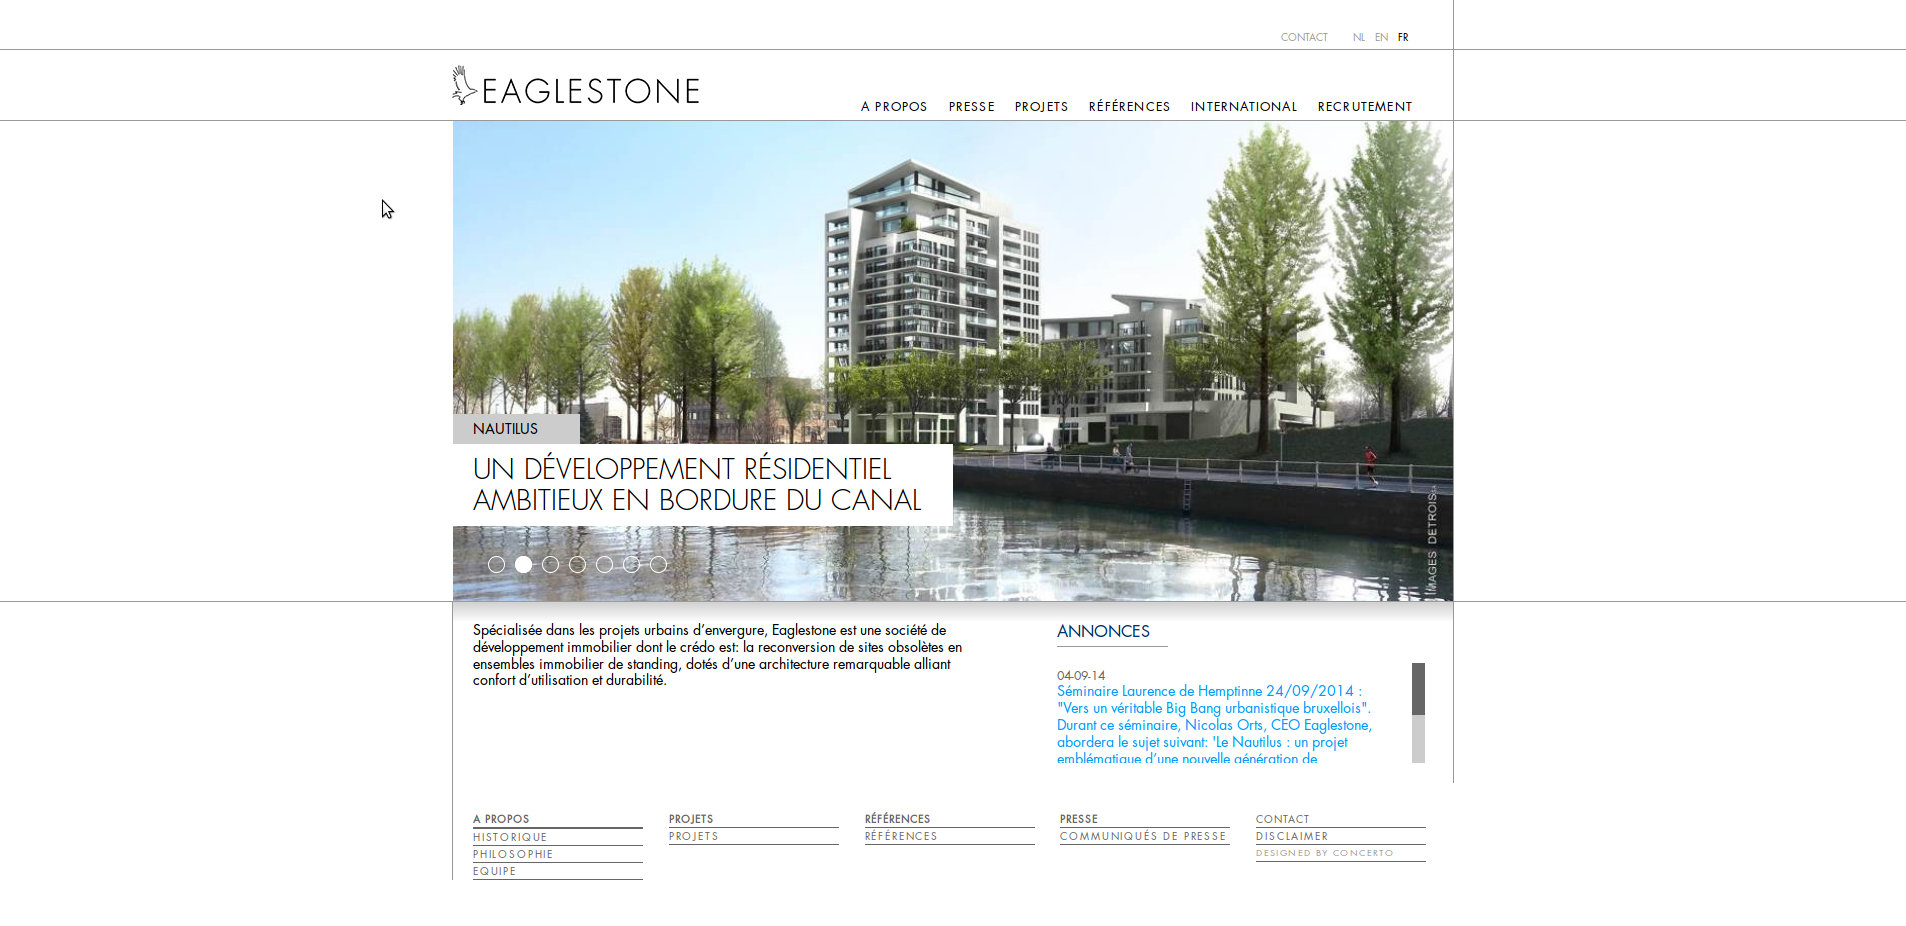 Le site d'Eaglestone